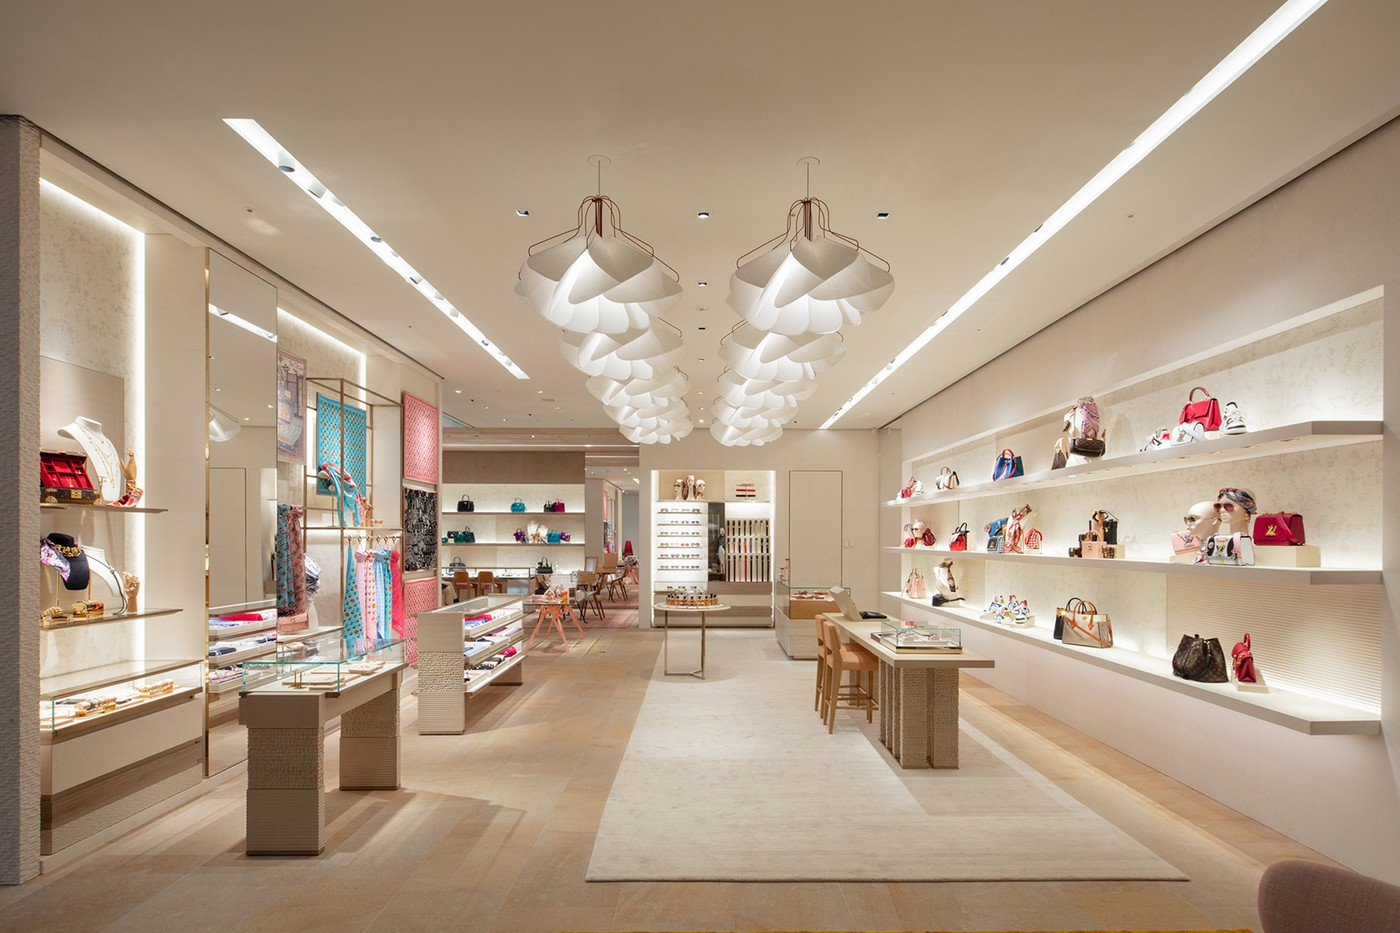 Louis vuitton maison seoul korea boutique store opening